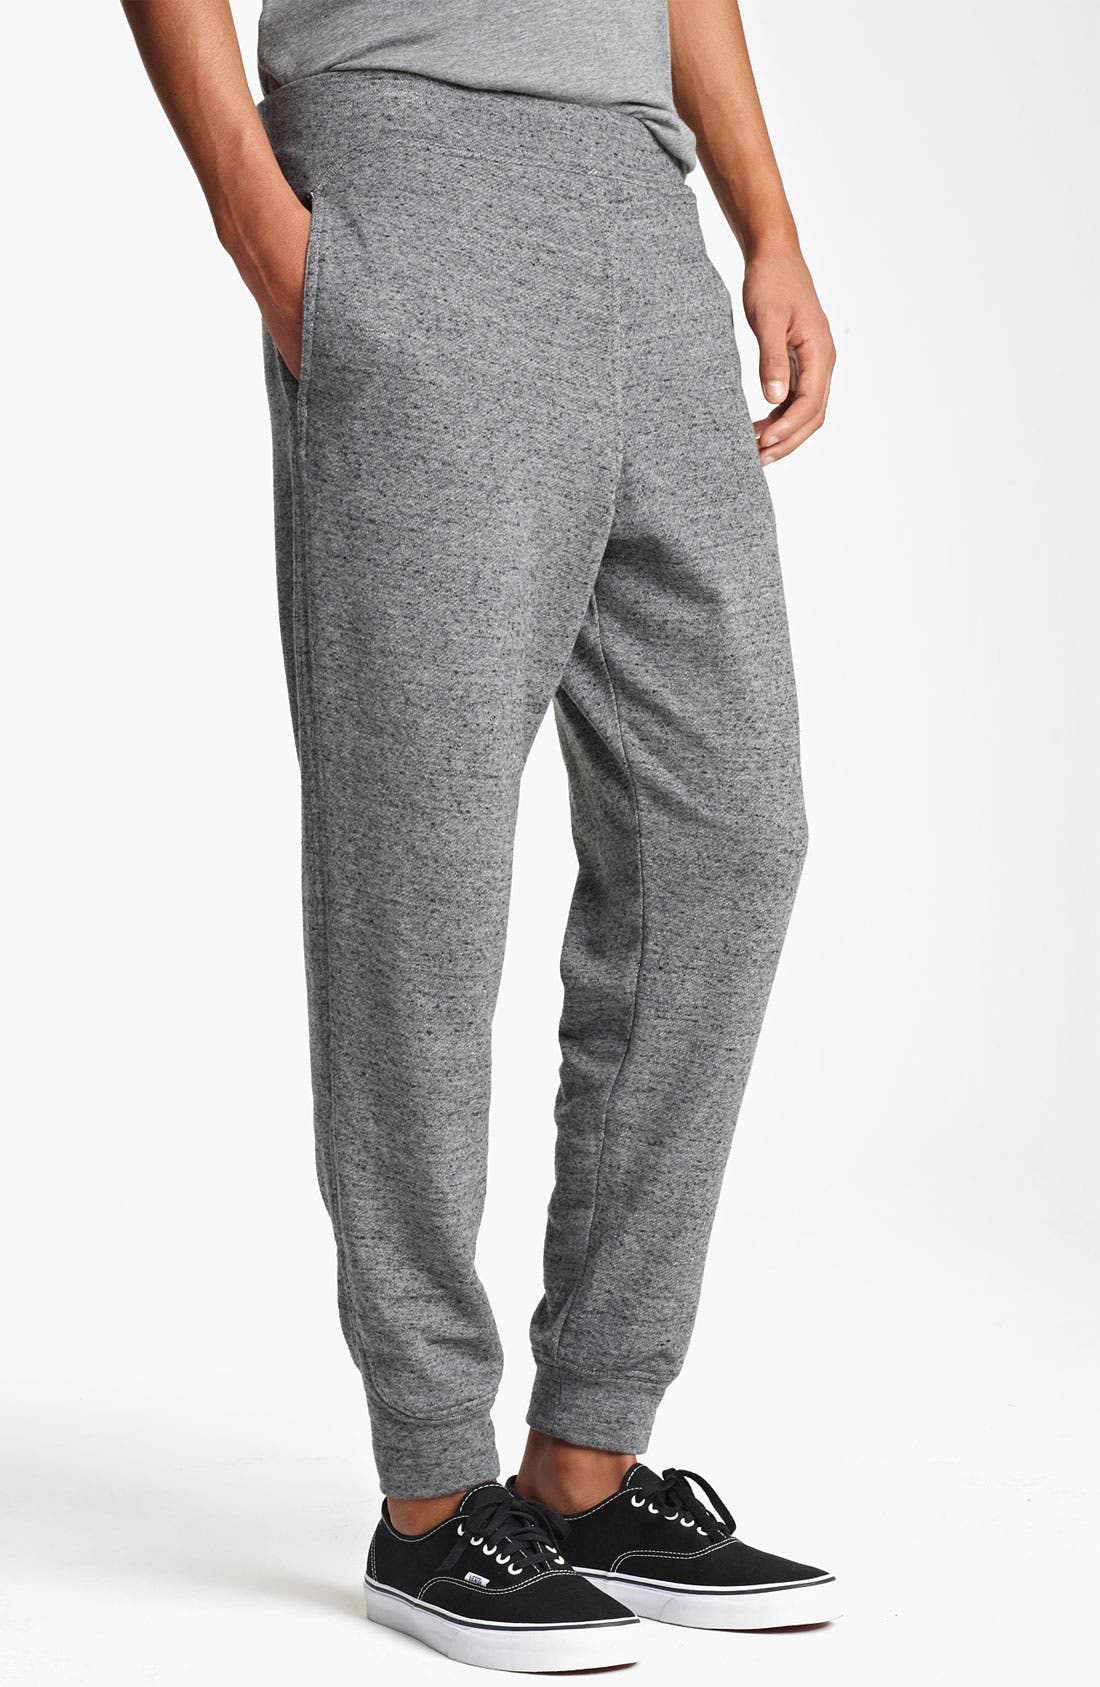 Main Image - T by Alexander Wang French Terry Cotton Sweatpants